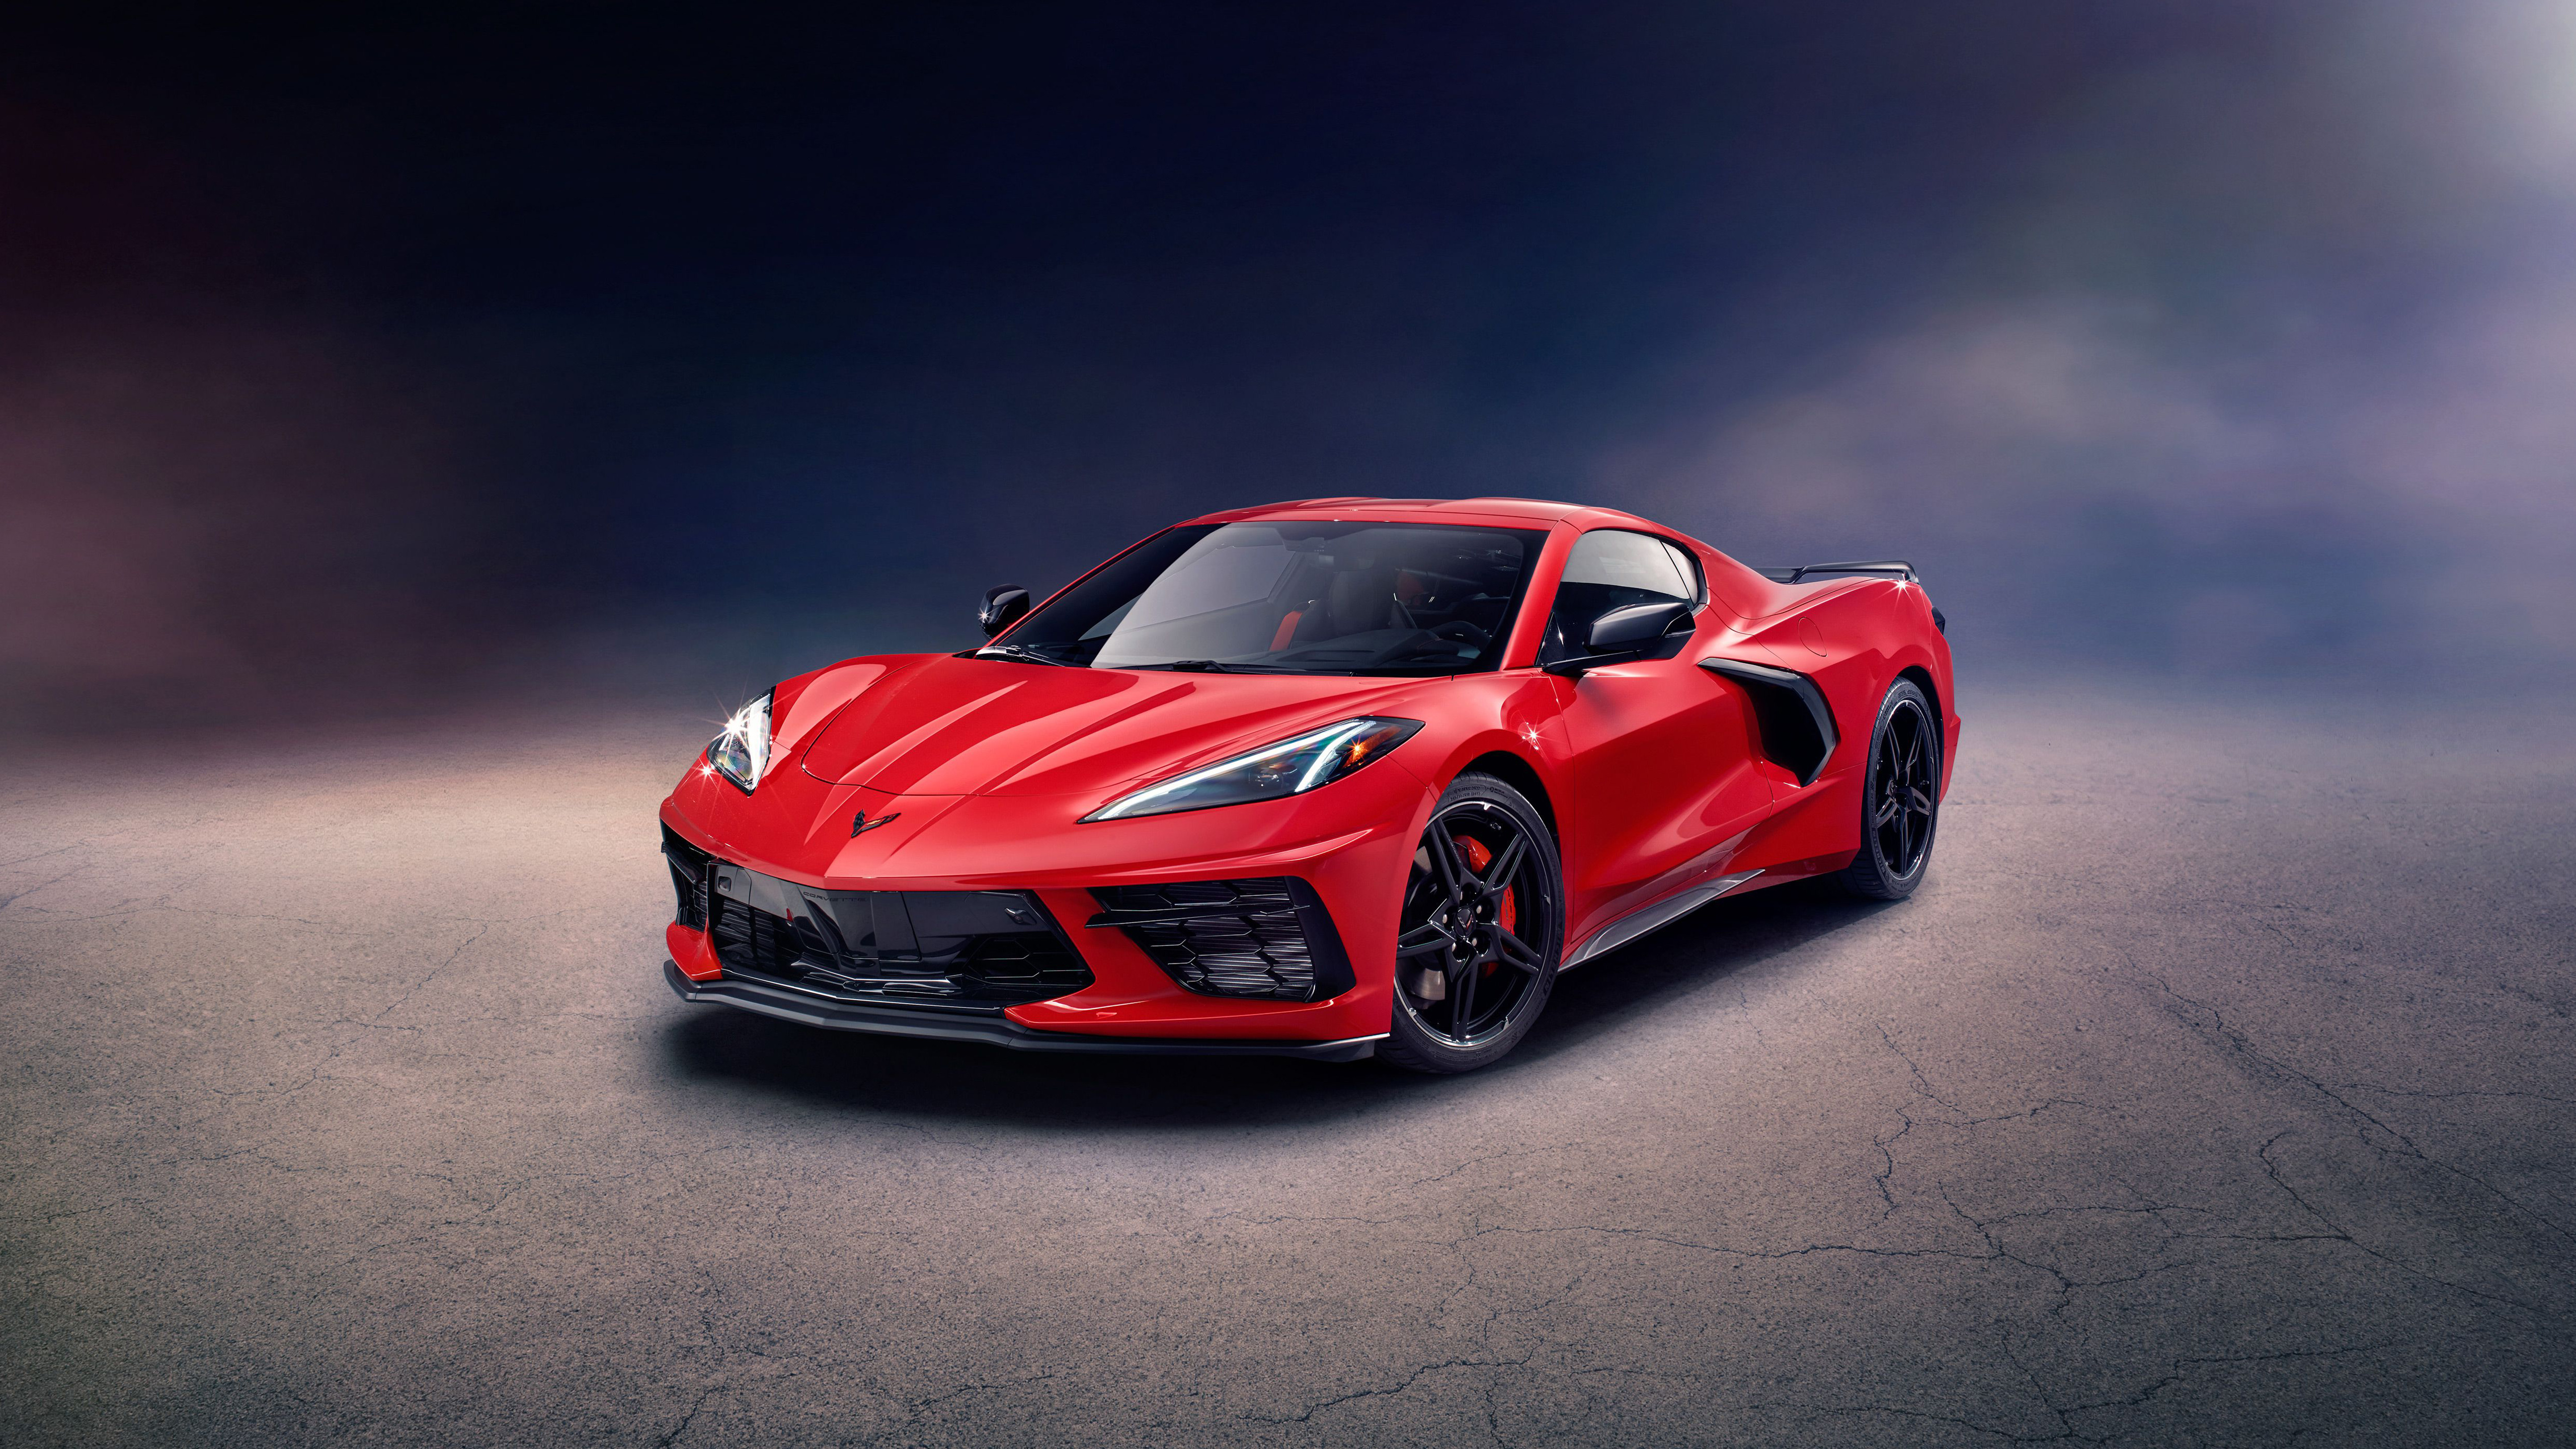 2020 Chevrolet Corvette Stingray Z51 4k 3 Wallpaper Hd